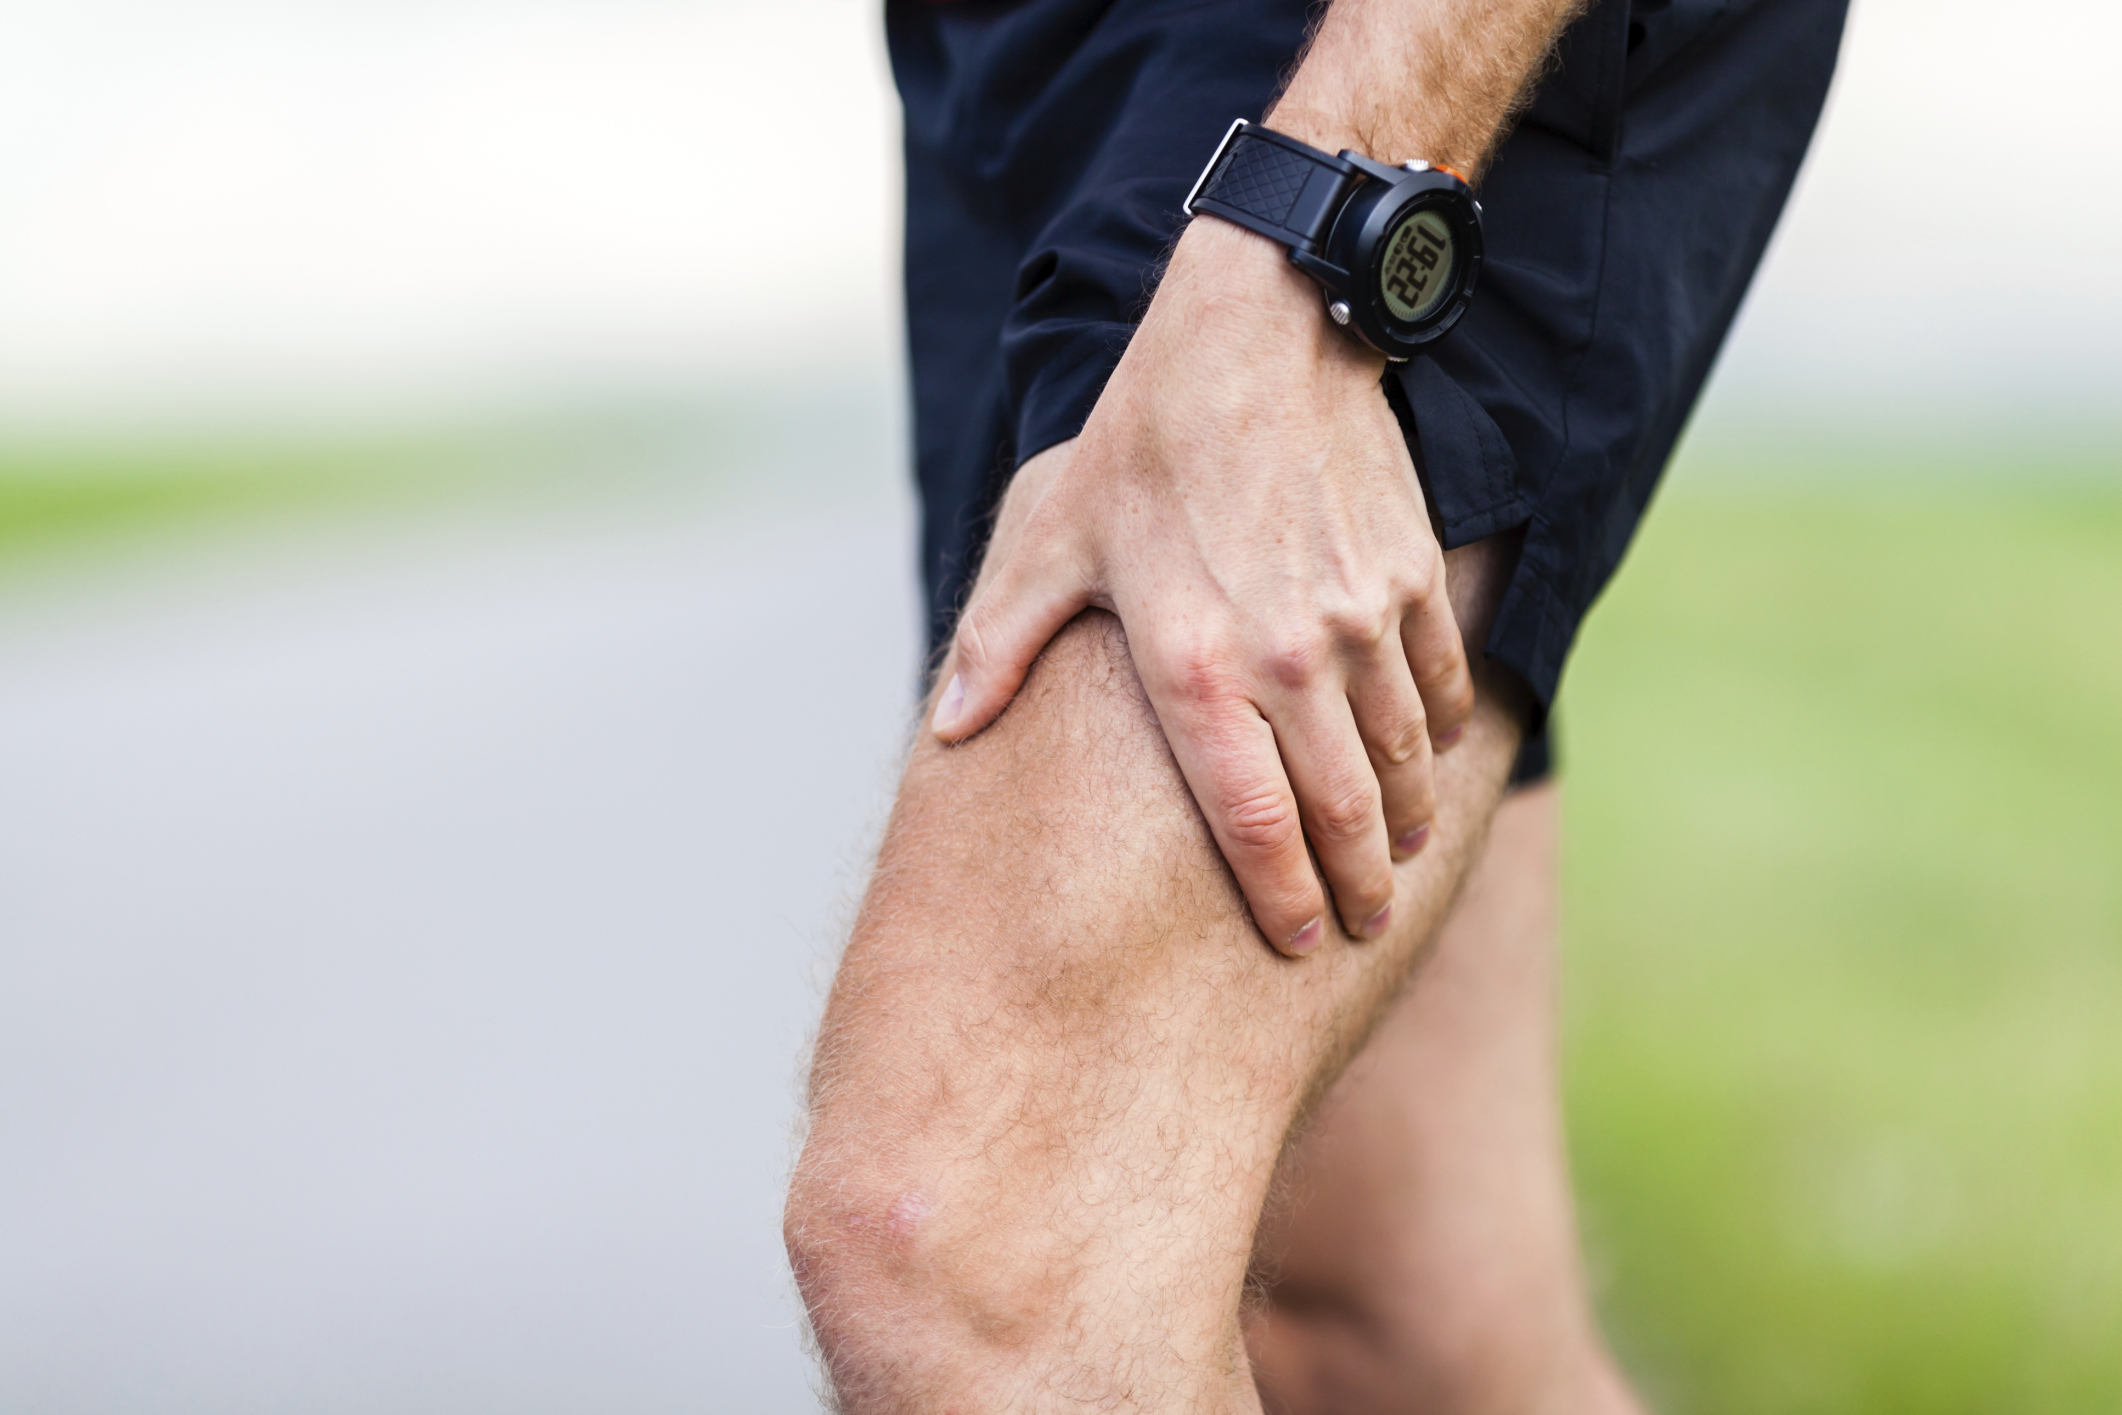 Silent killer: Why listening to your legs could save your life